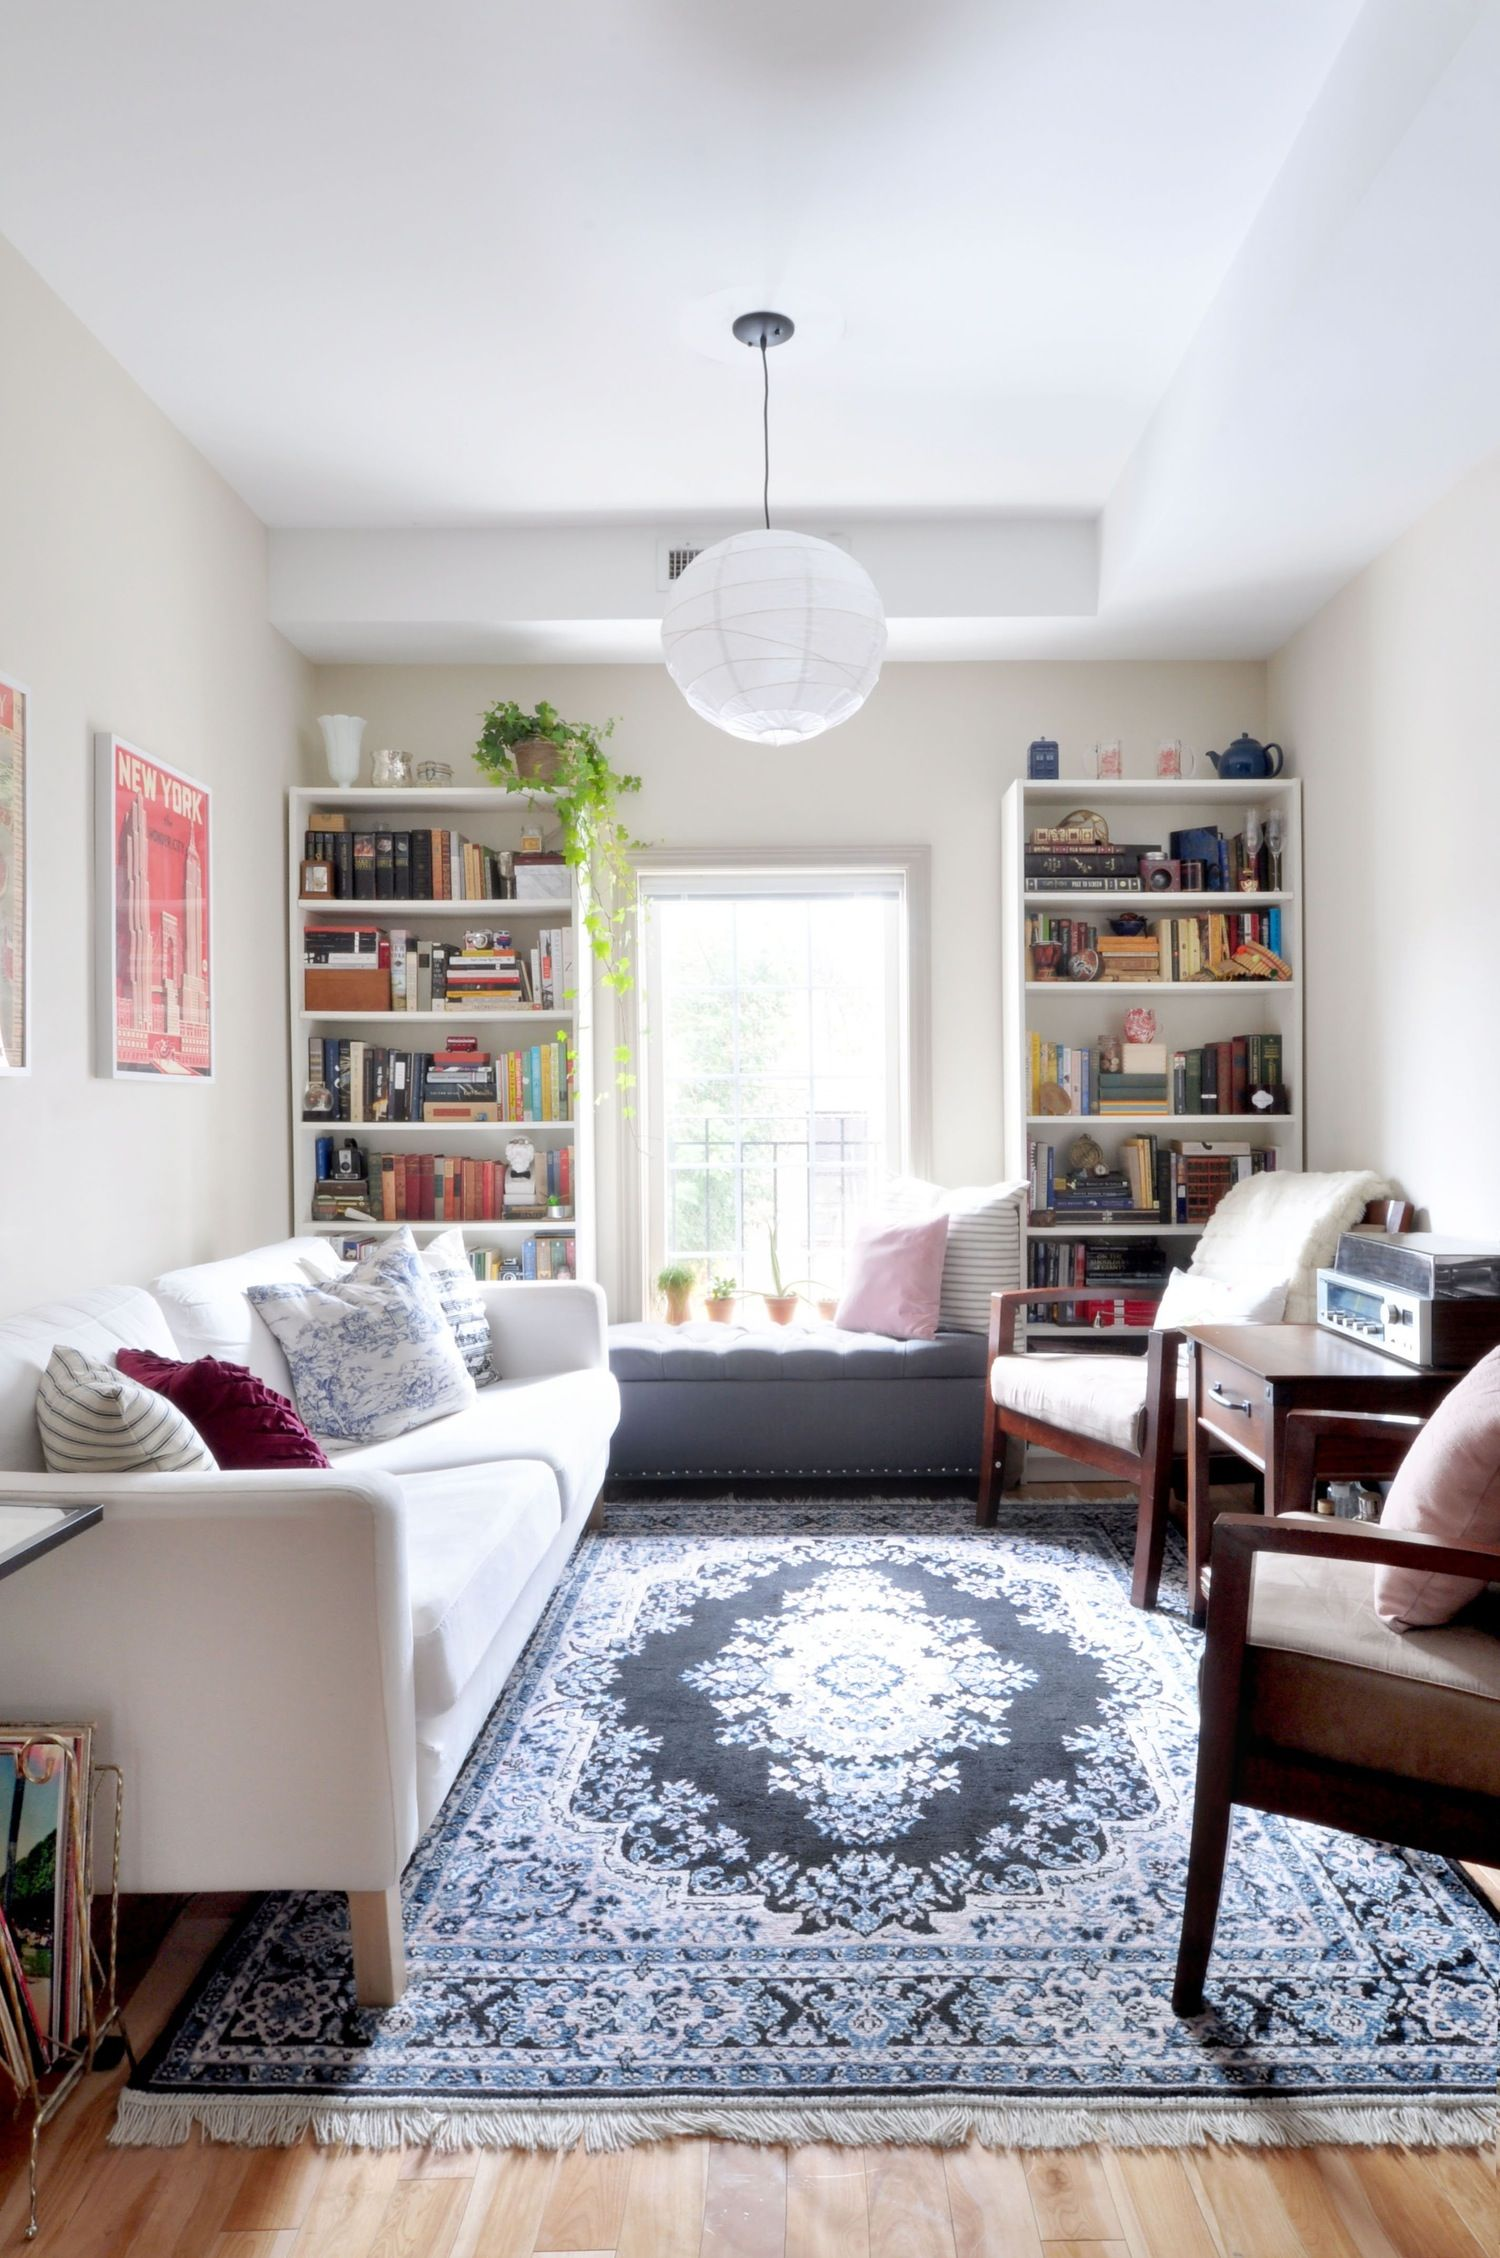 6 Ways to Make the Furniture in Your Rental Look More \